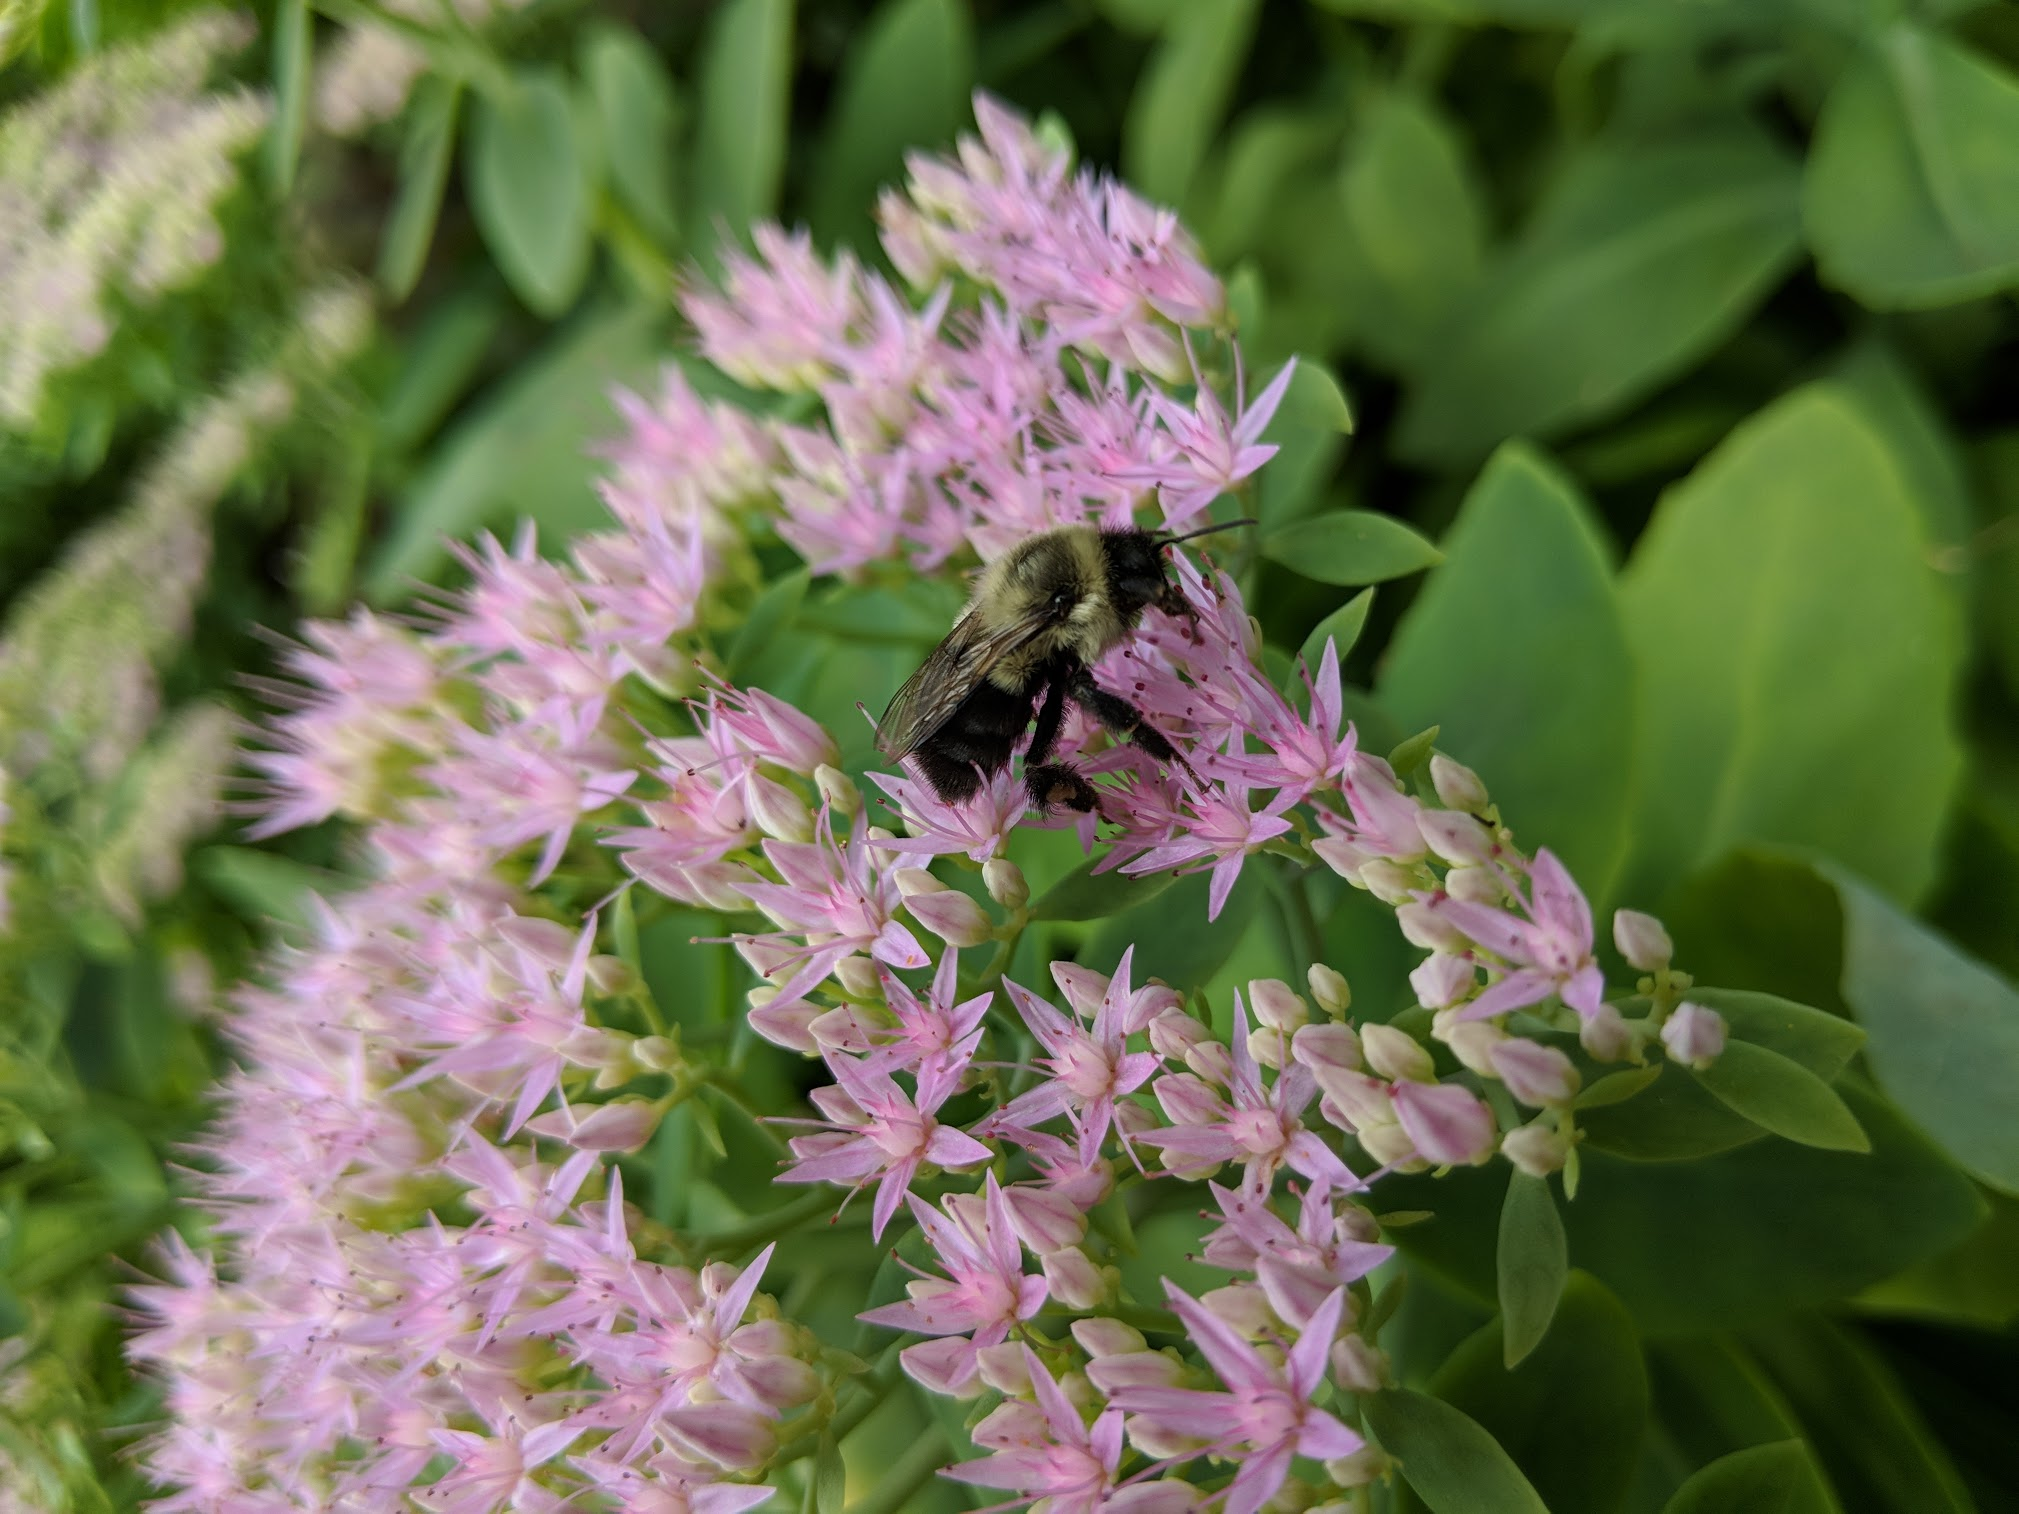 Bombus on Sedum